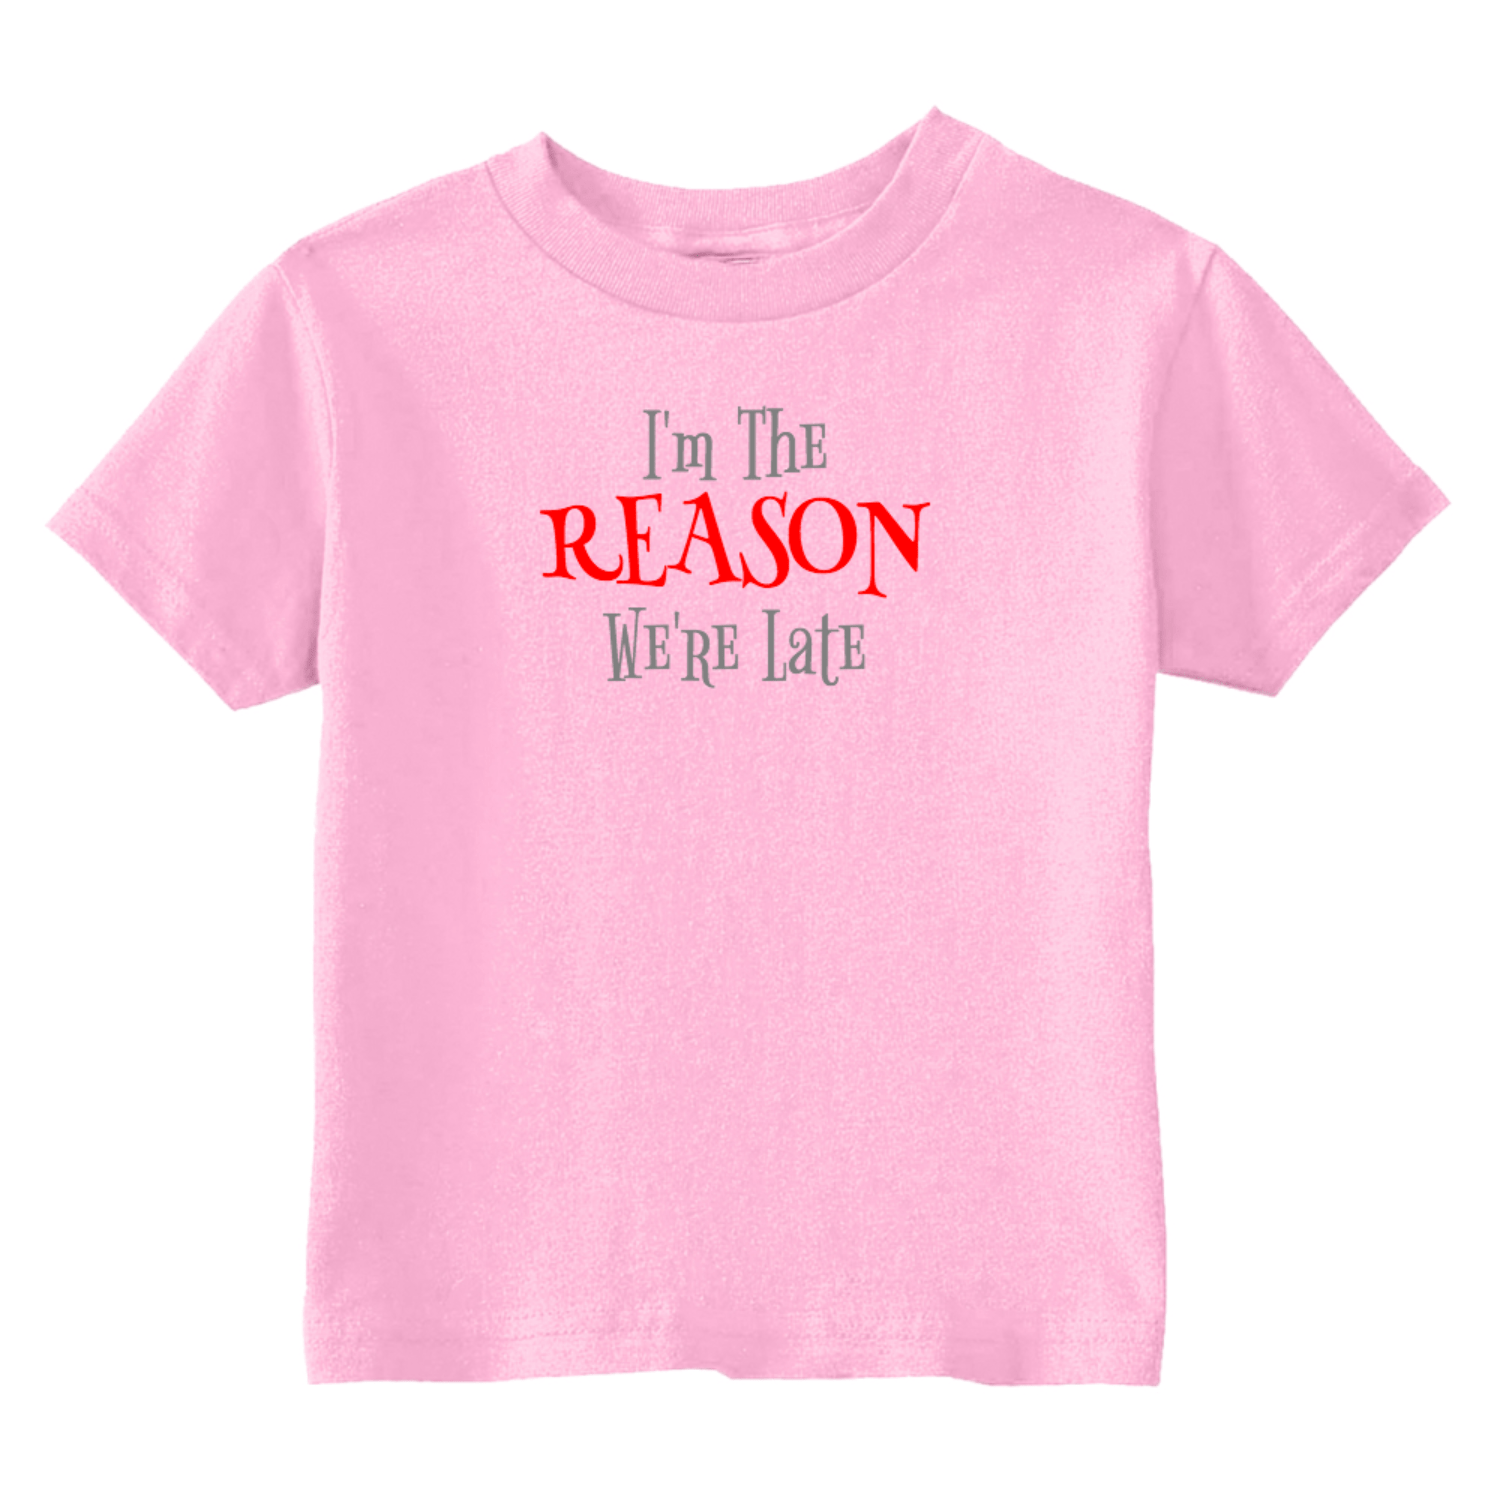 I'm The Reason We're Late Toddler T-Shirt Light Pink